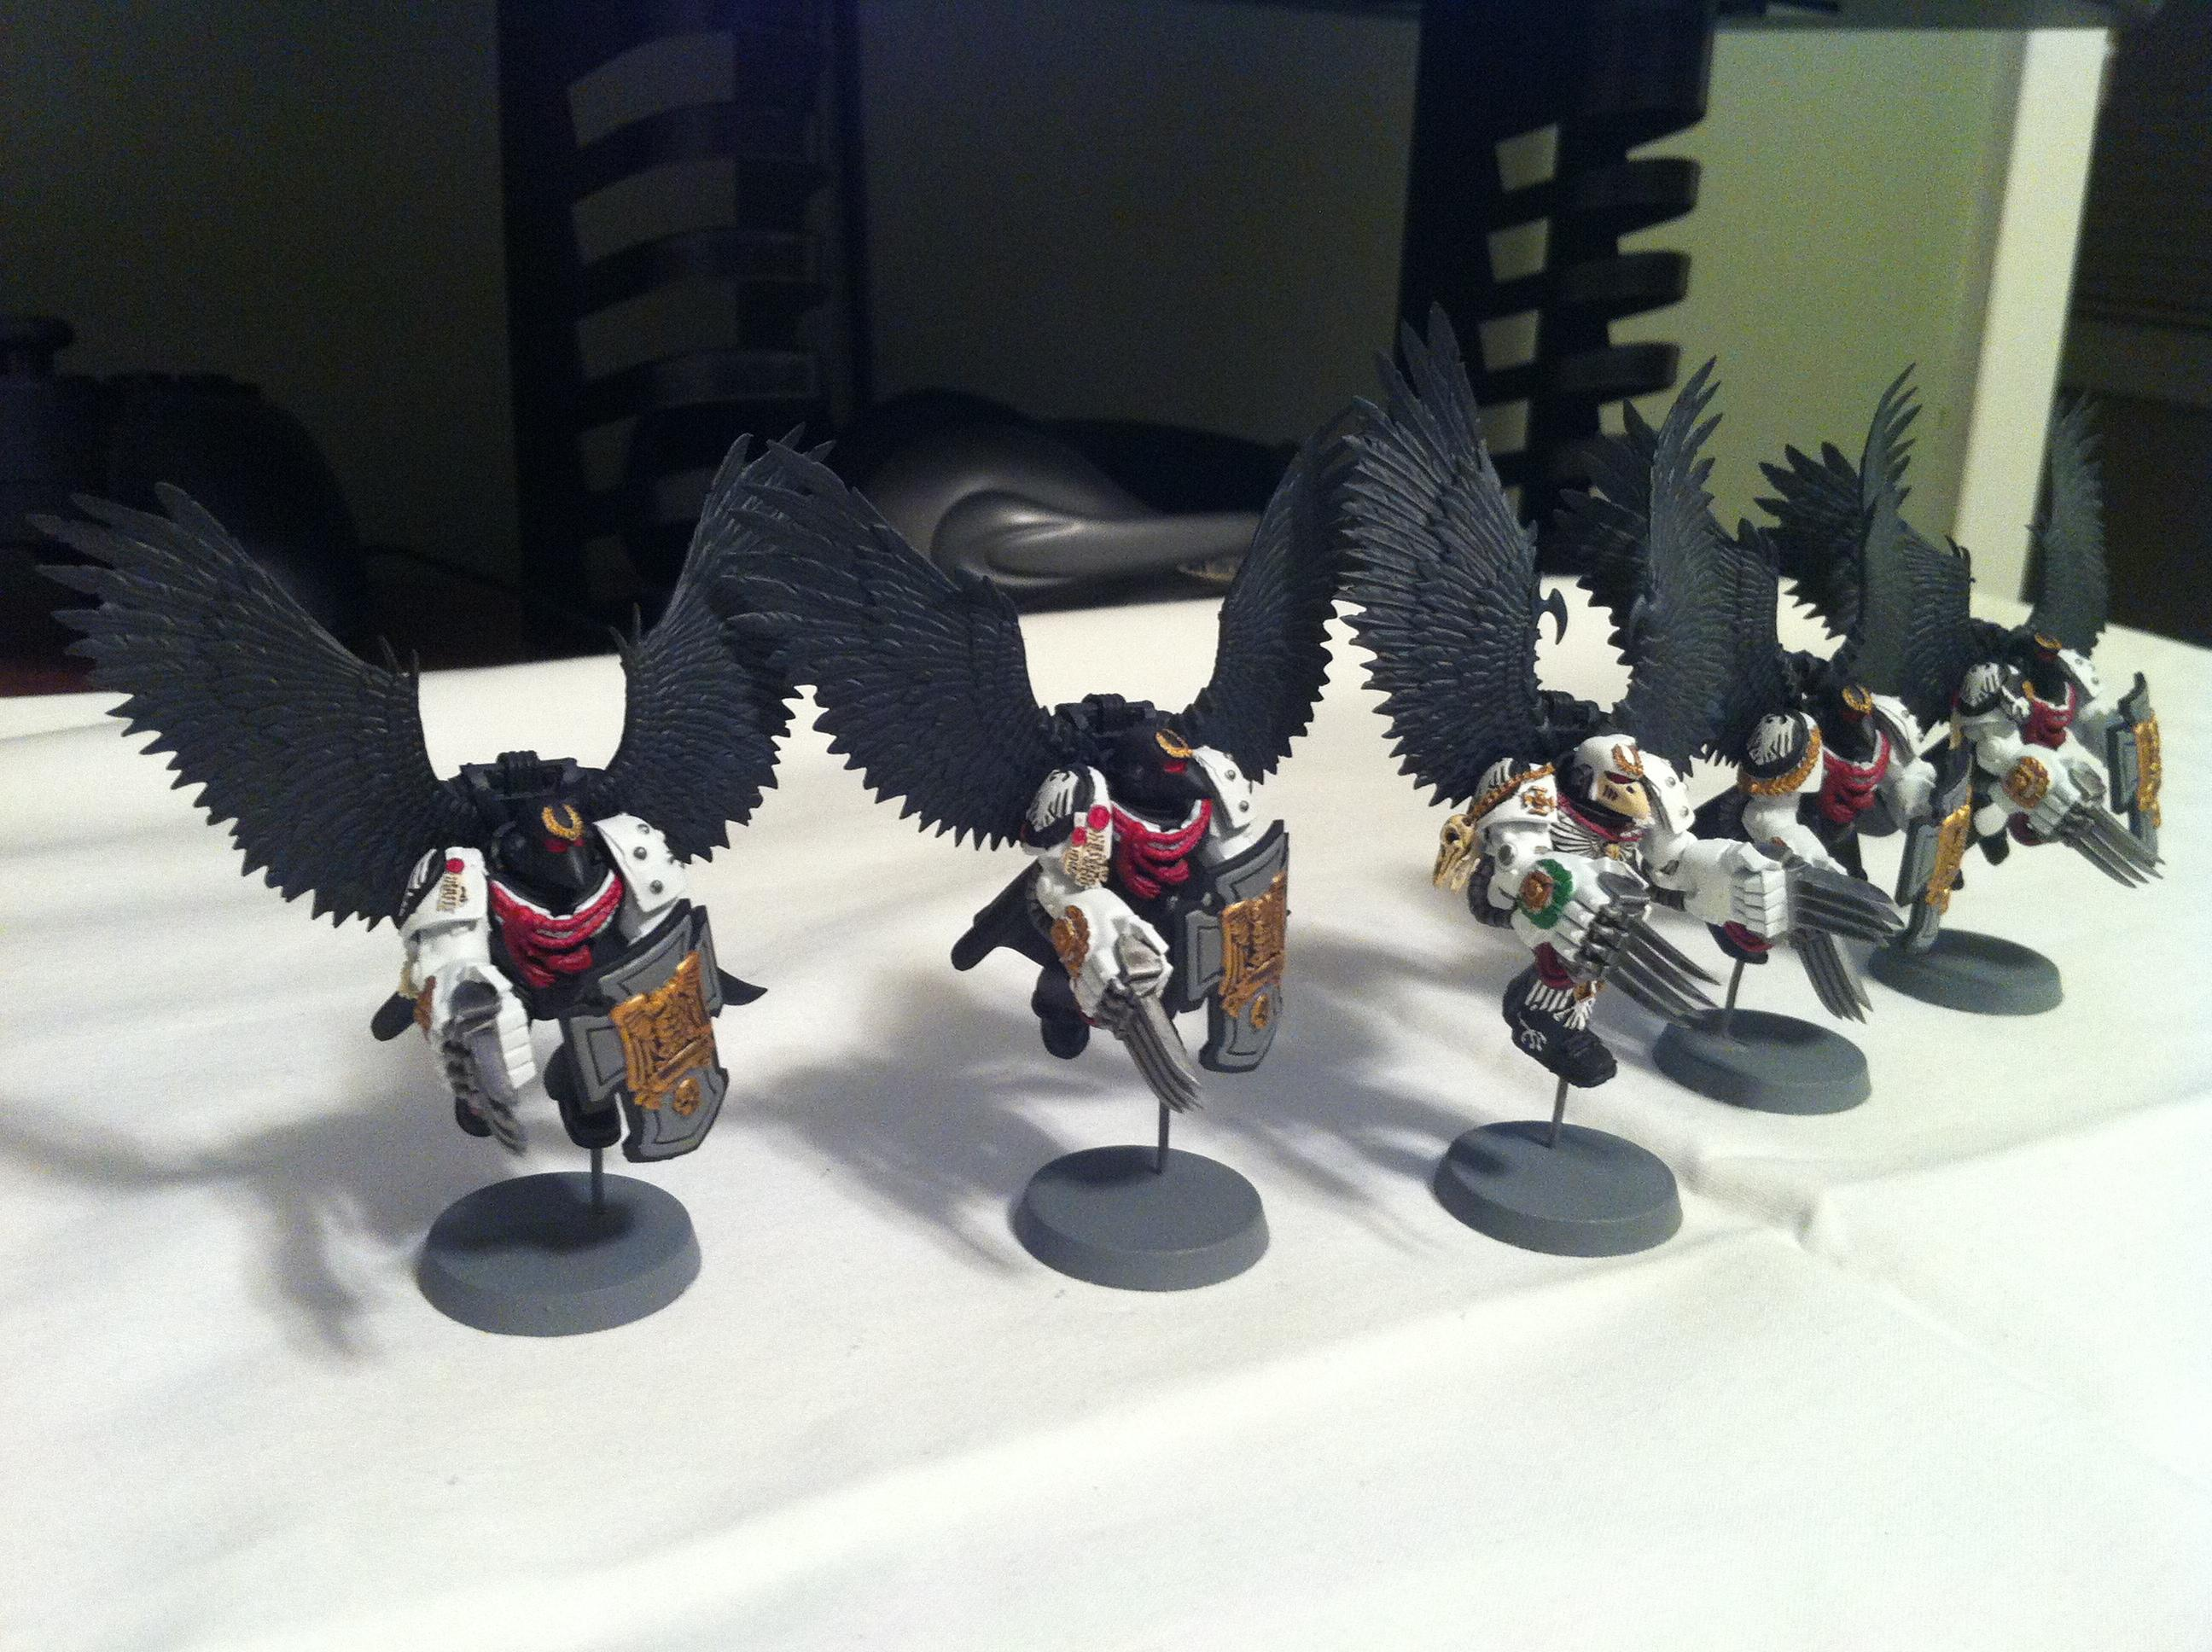 Beakie, Custom, Mk6, Mkvi, Raven Guard, Scourge, Space Marines, Vanguard, Veteran